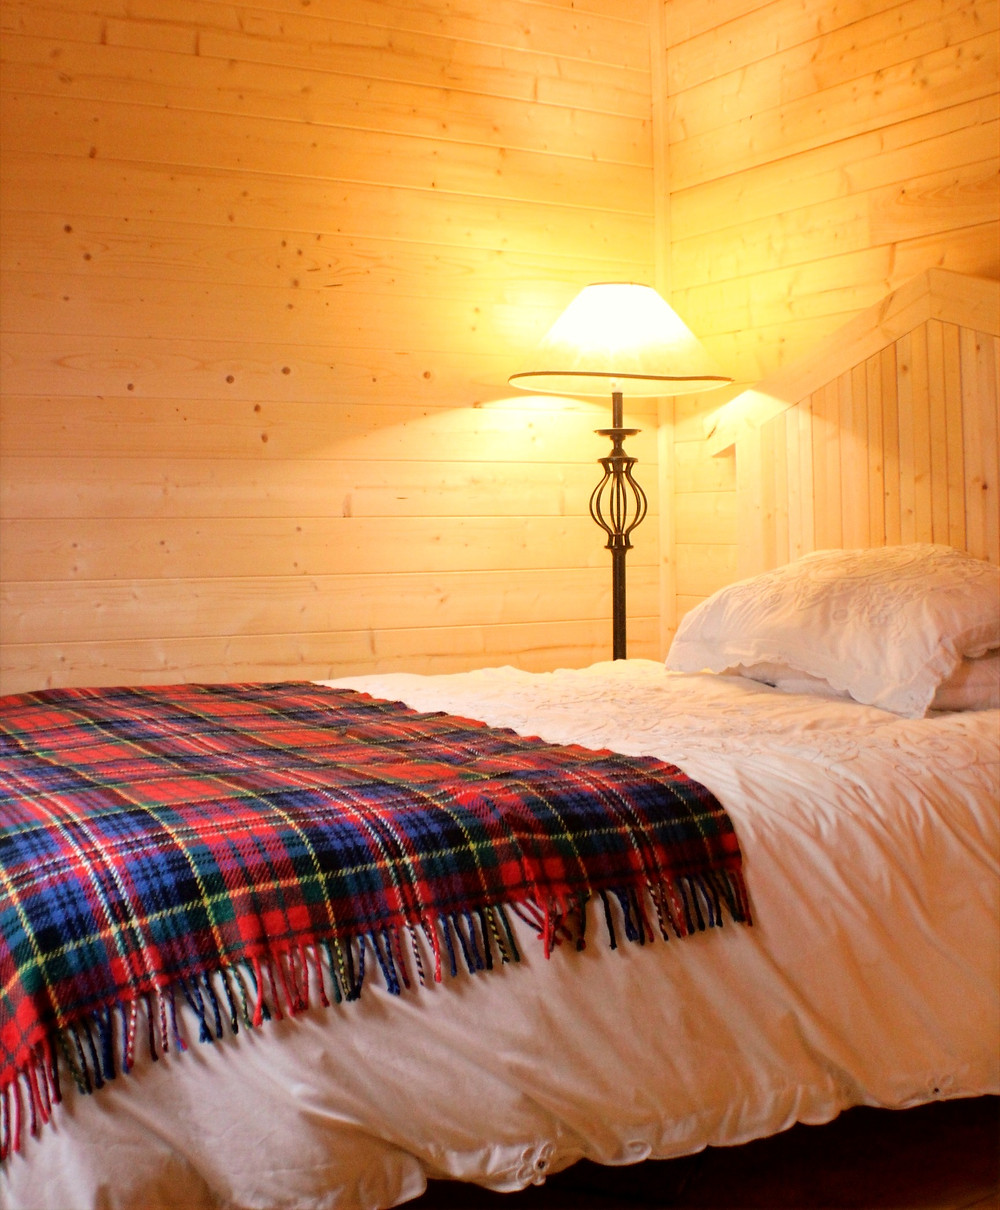 Log Cabin Bedroom with Lamp